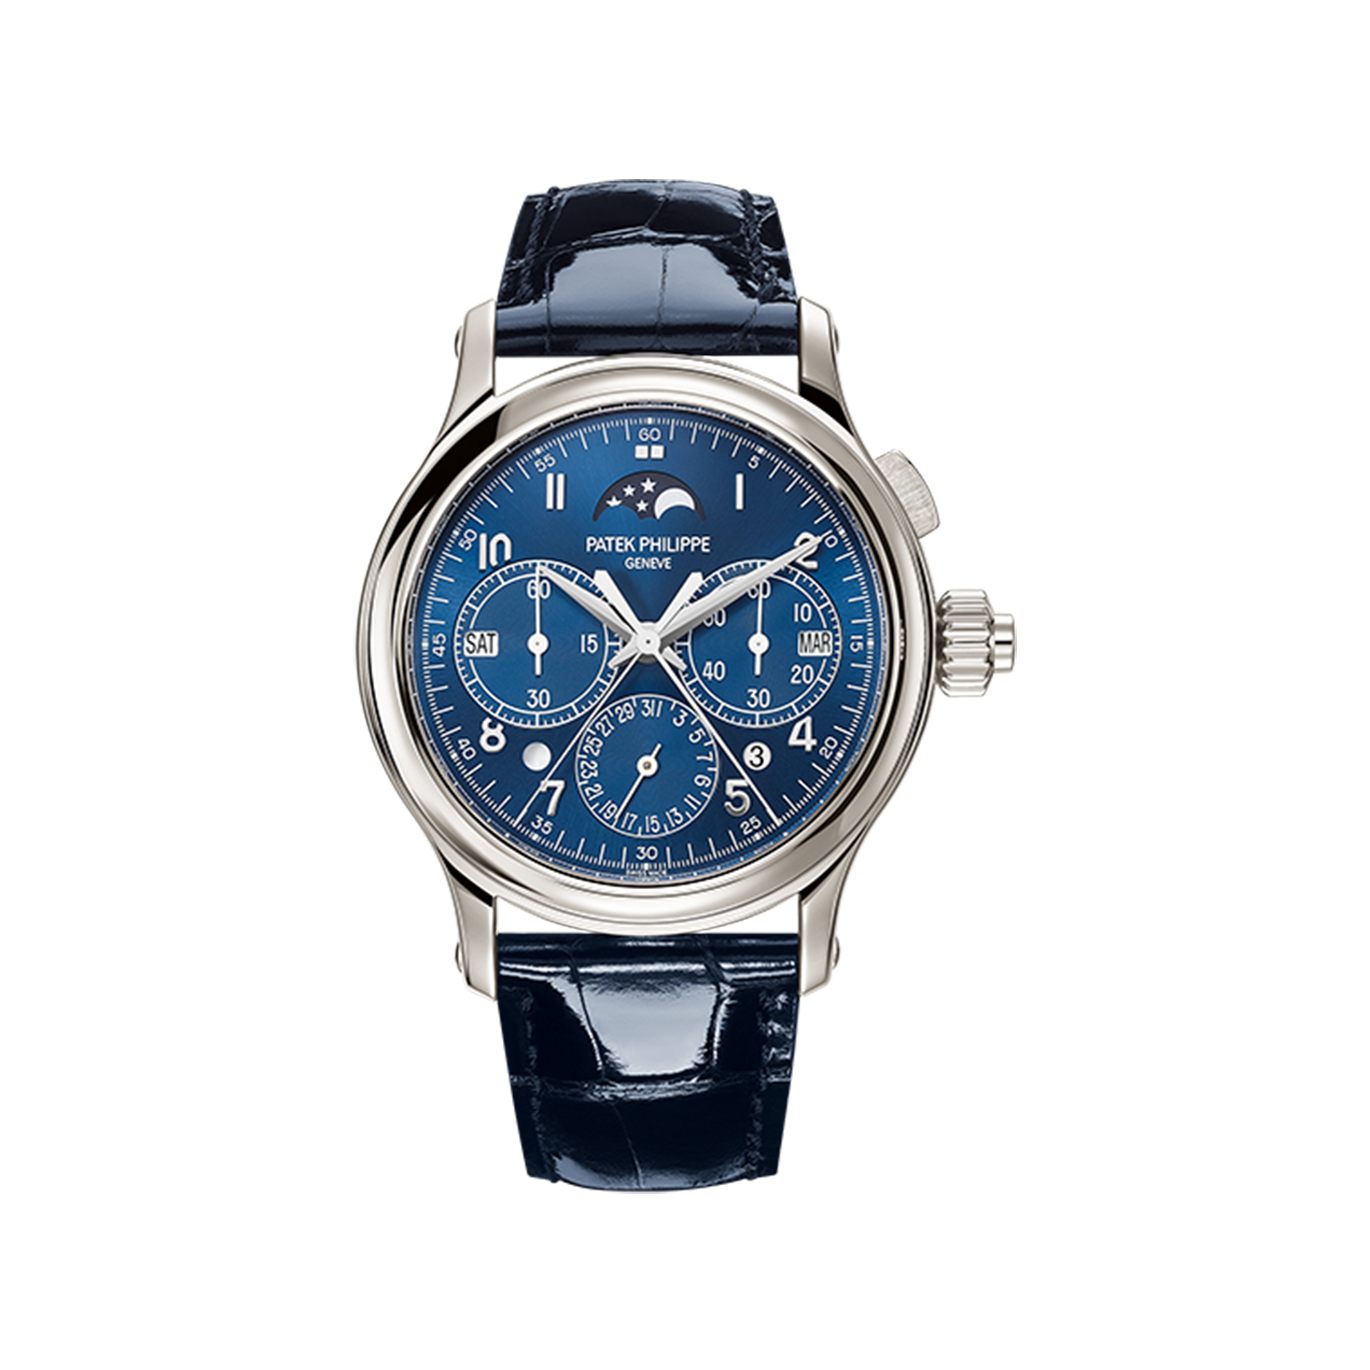 Patek Philippe Perpetual Calendar Split-Seconds Chronograph 5372 Platinum / Blue 5372P-001